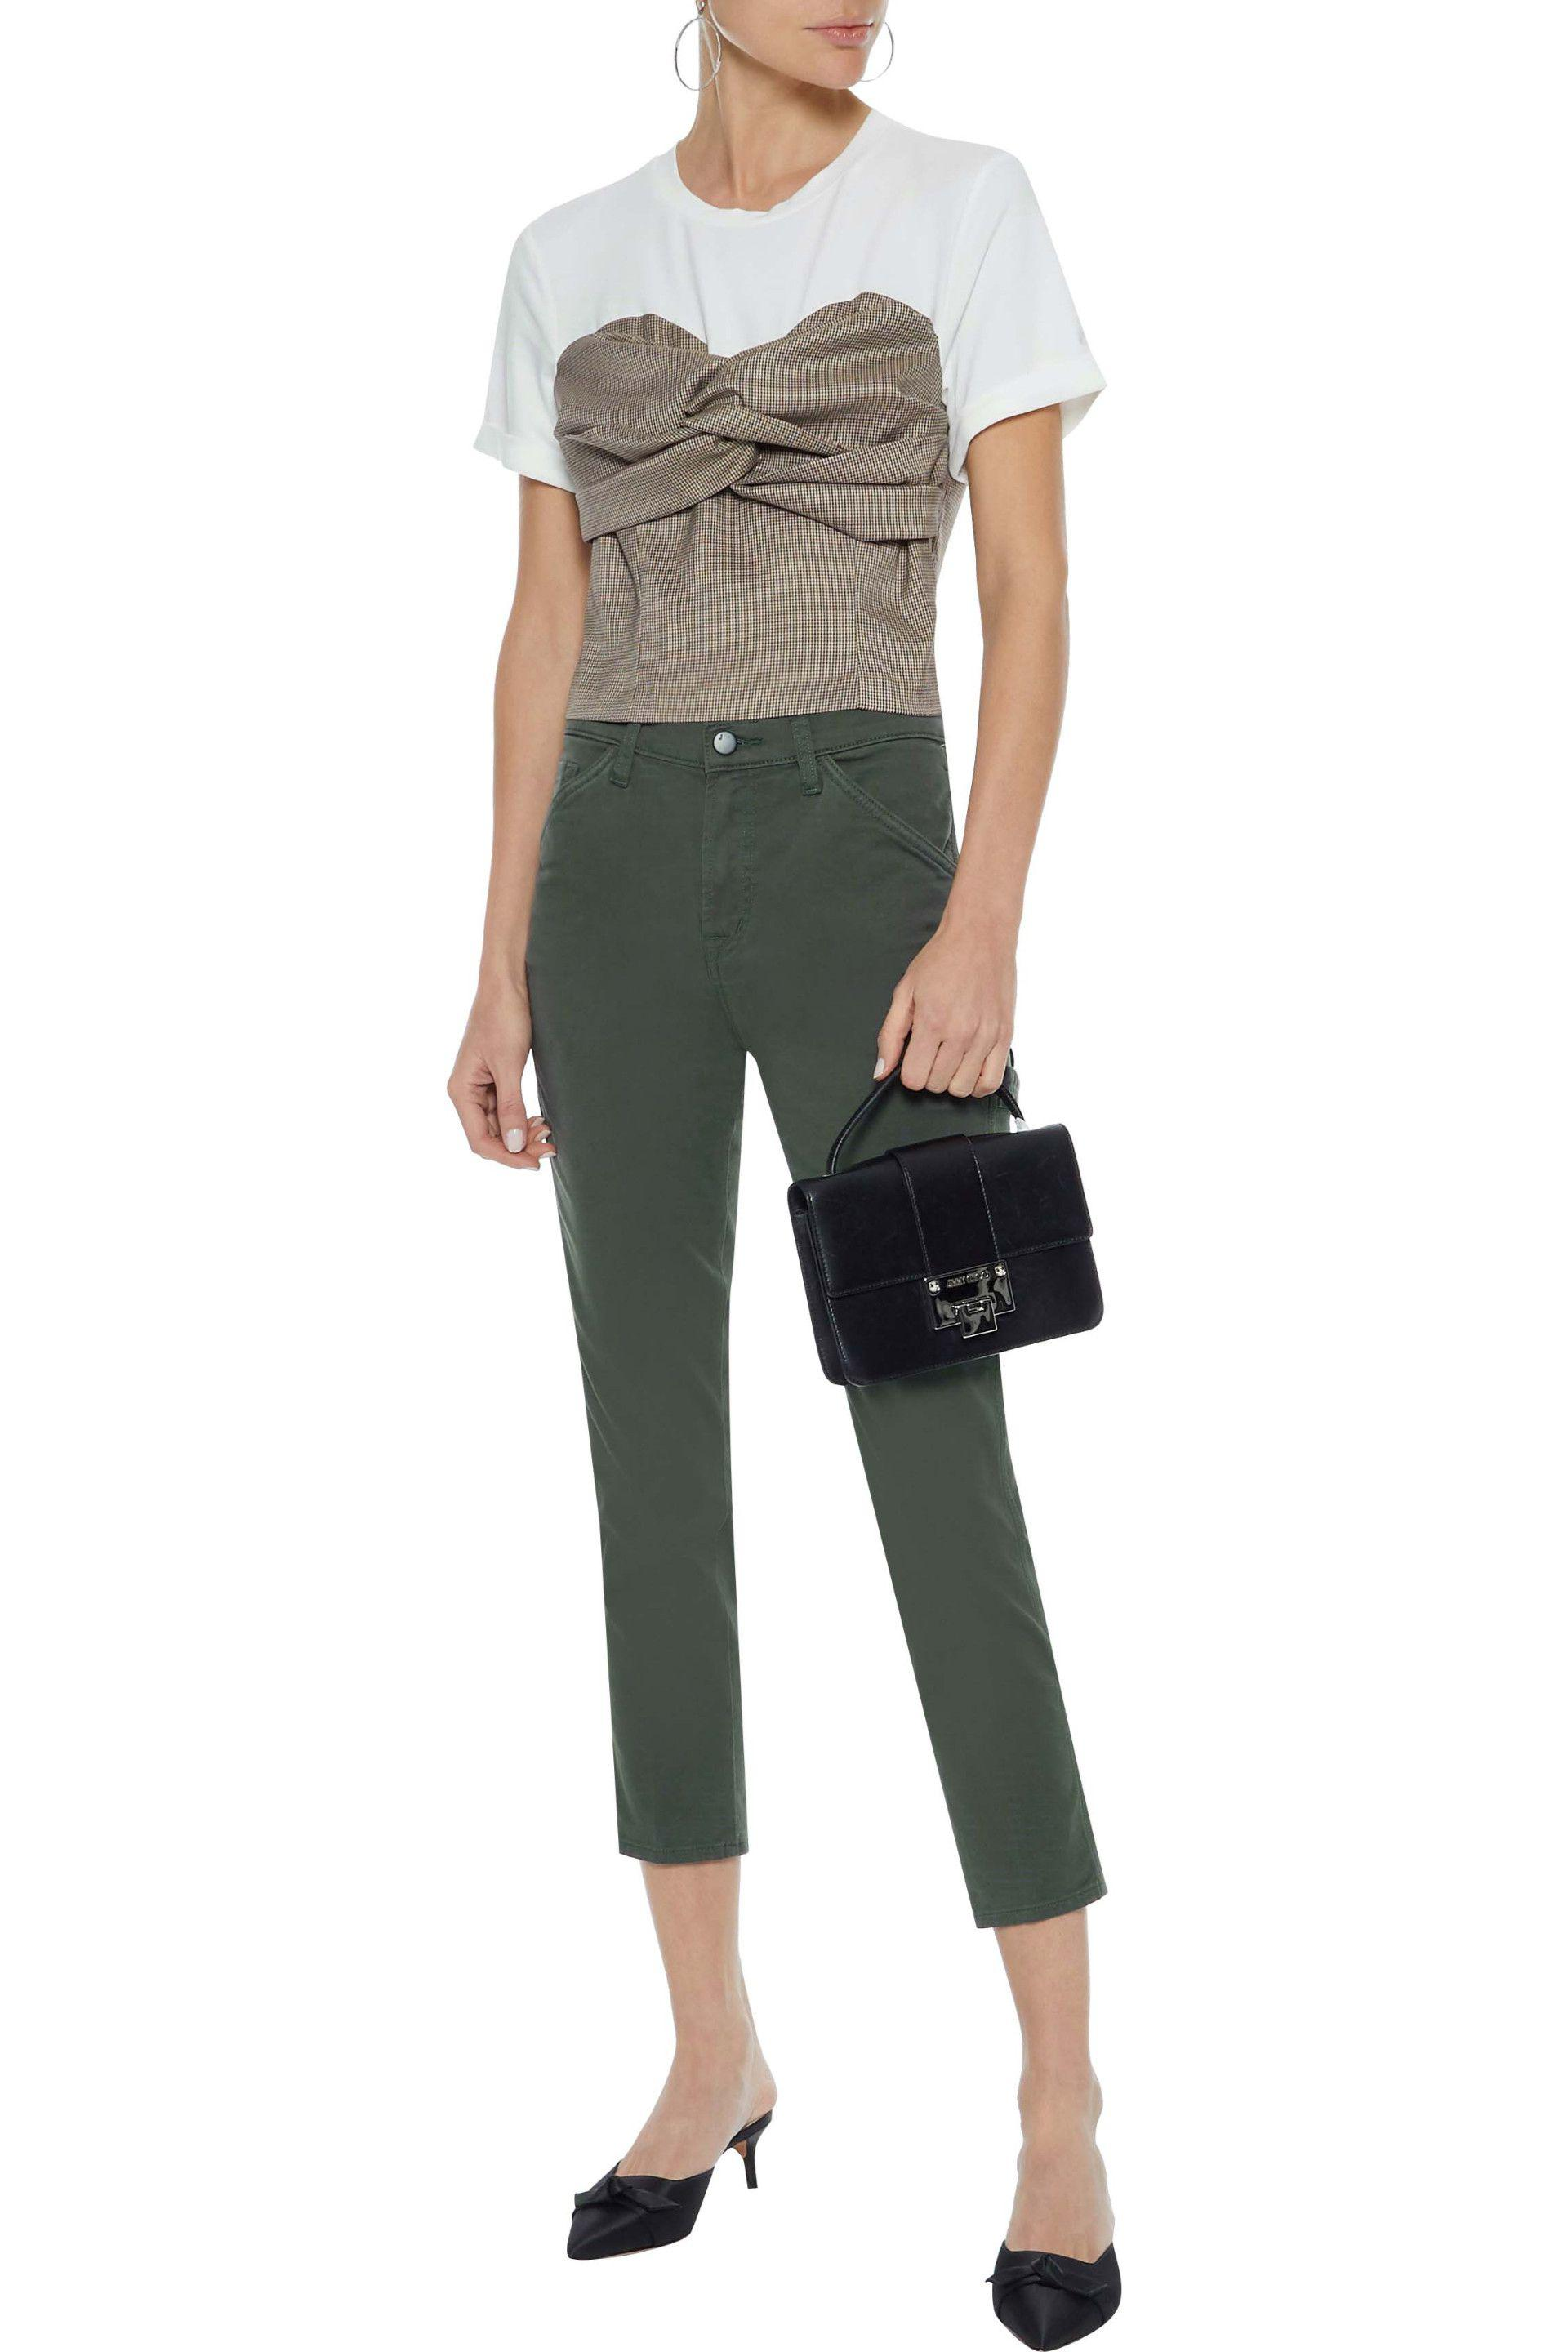 a3a57c272bed J Brand - Green Ruby Painter Cropped Cotton-blend Twill Slim-leg Pants -.  View fullscreen